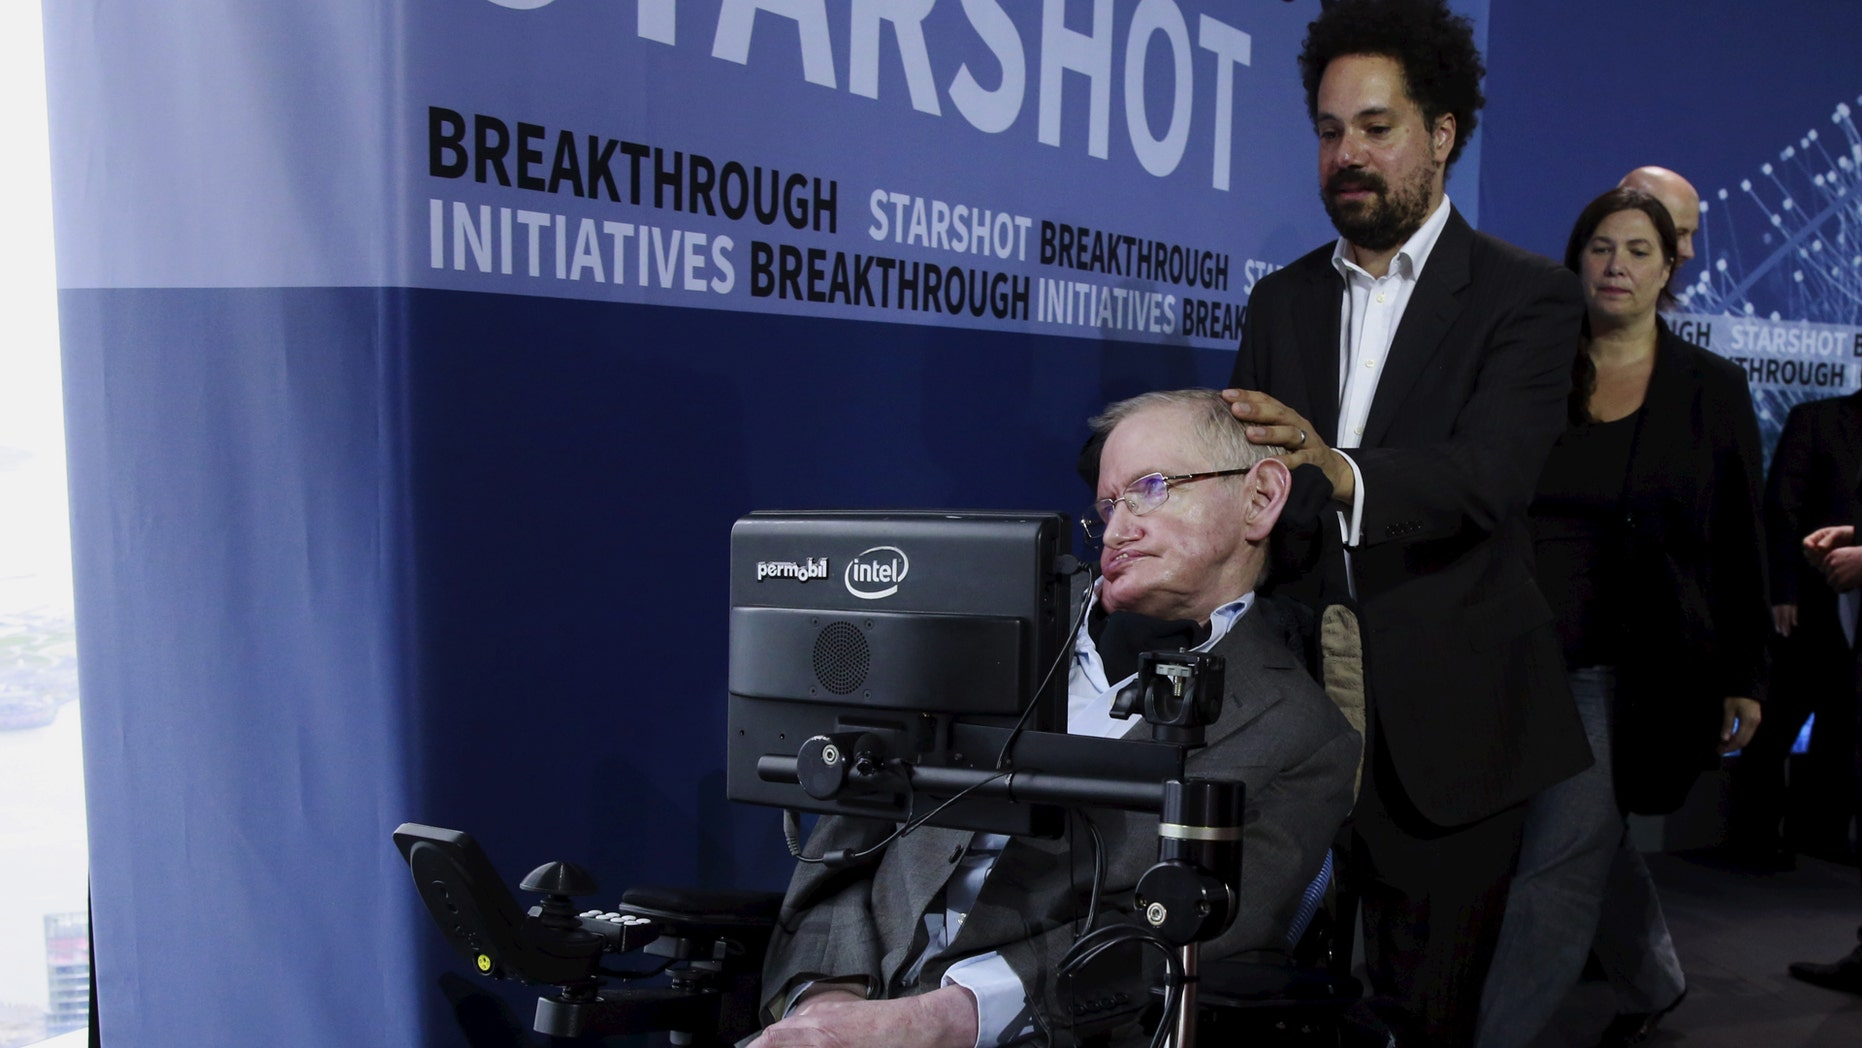 File photo: Physicist Stephen Hawking exits the stage during an announcement of the Breakthrough Starshot initiative with investor Yuri Milner in New York April 12, 2016. (REUTERS/Lucas Jackson)